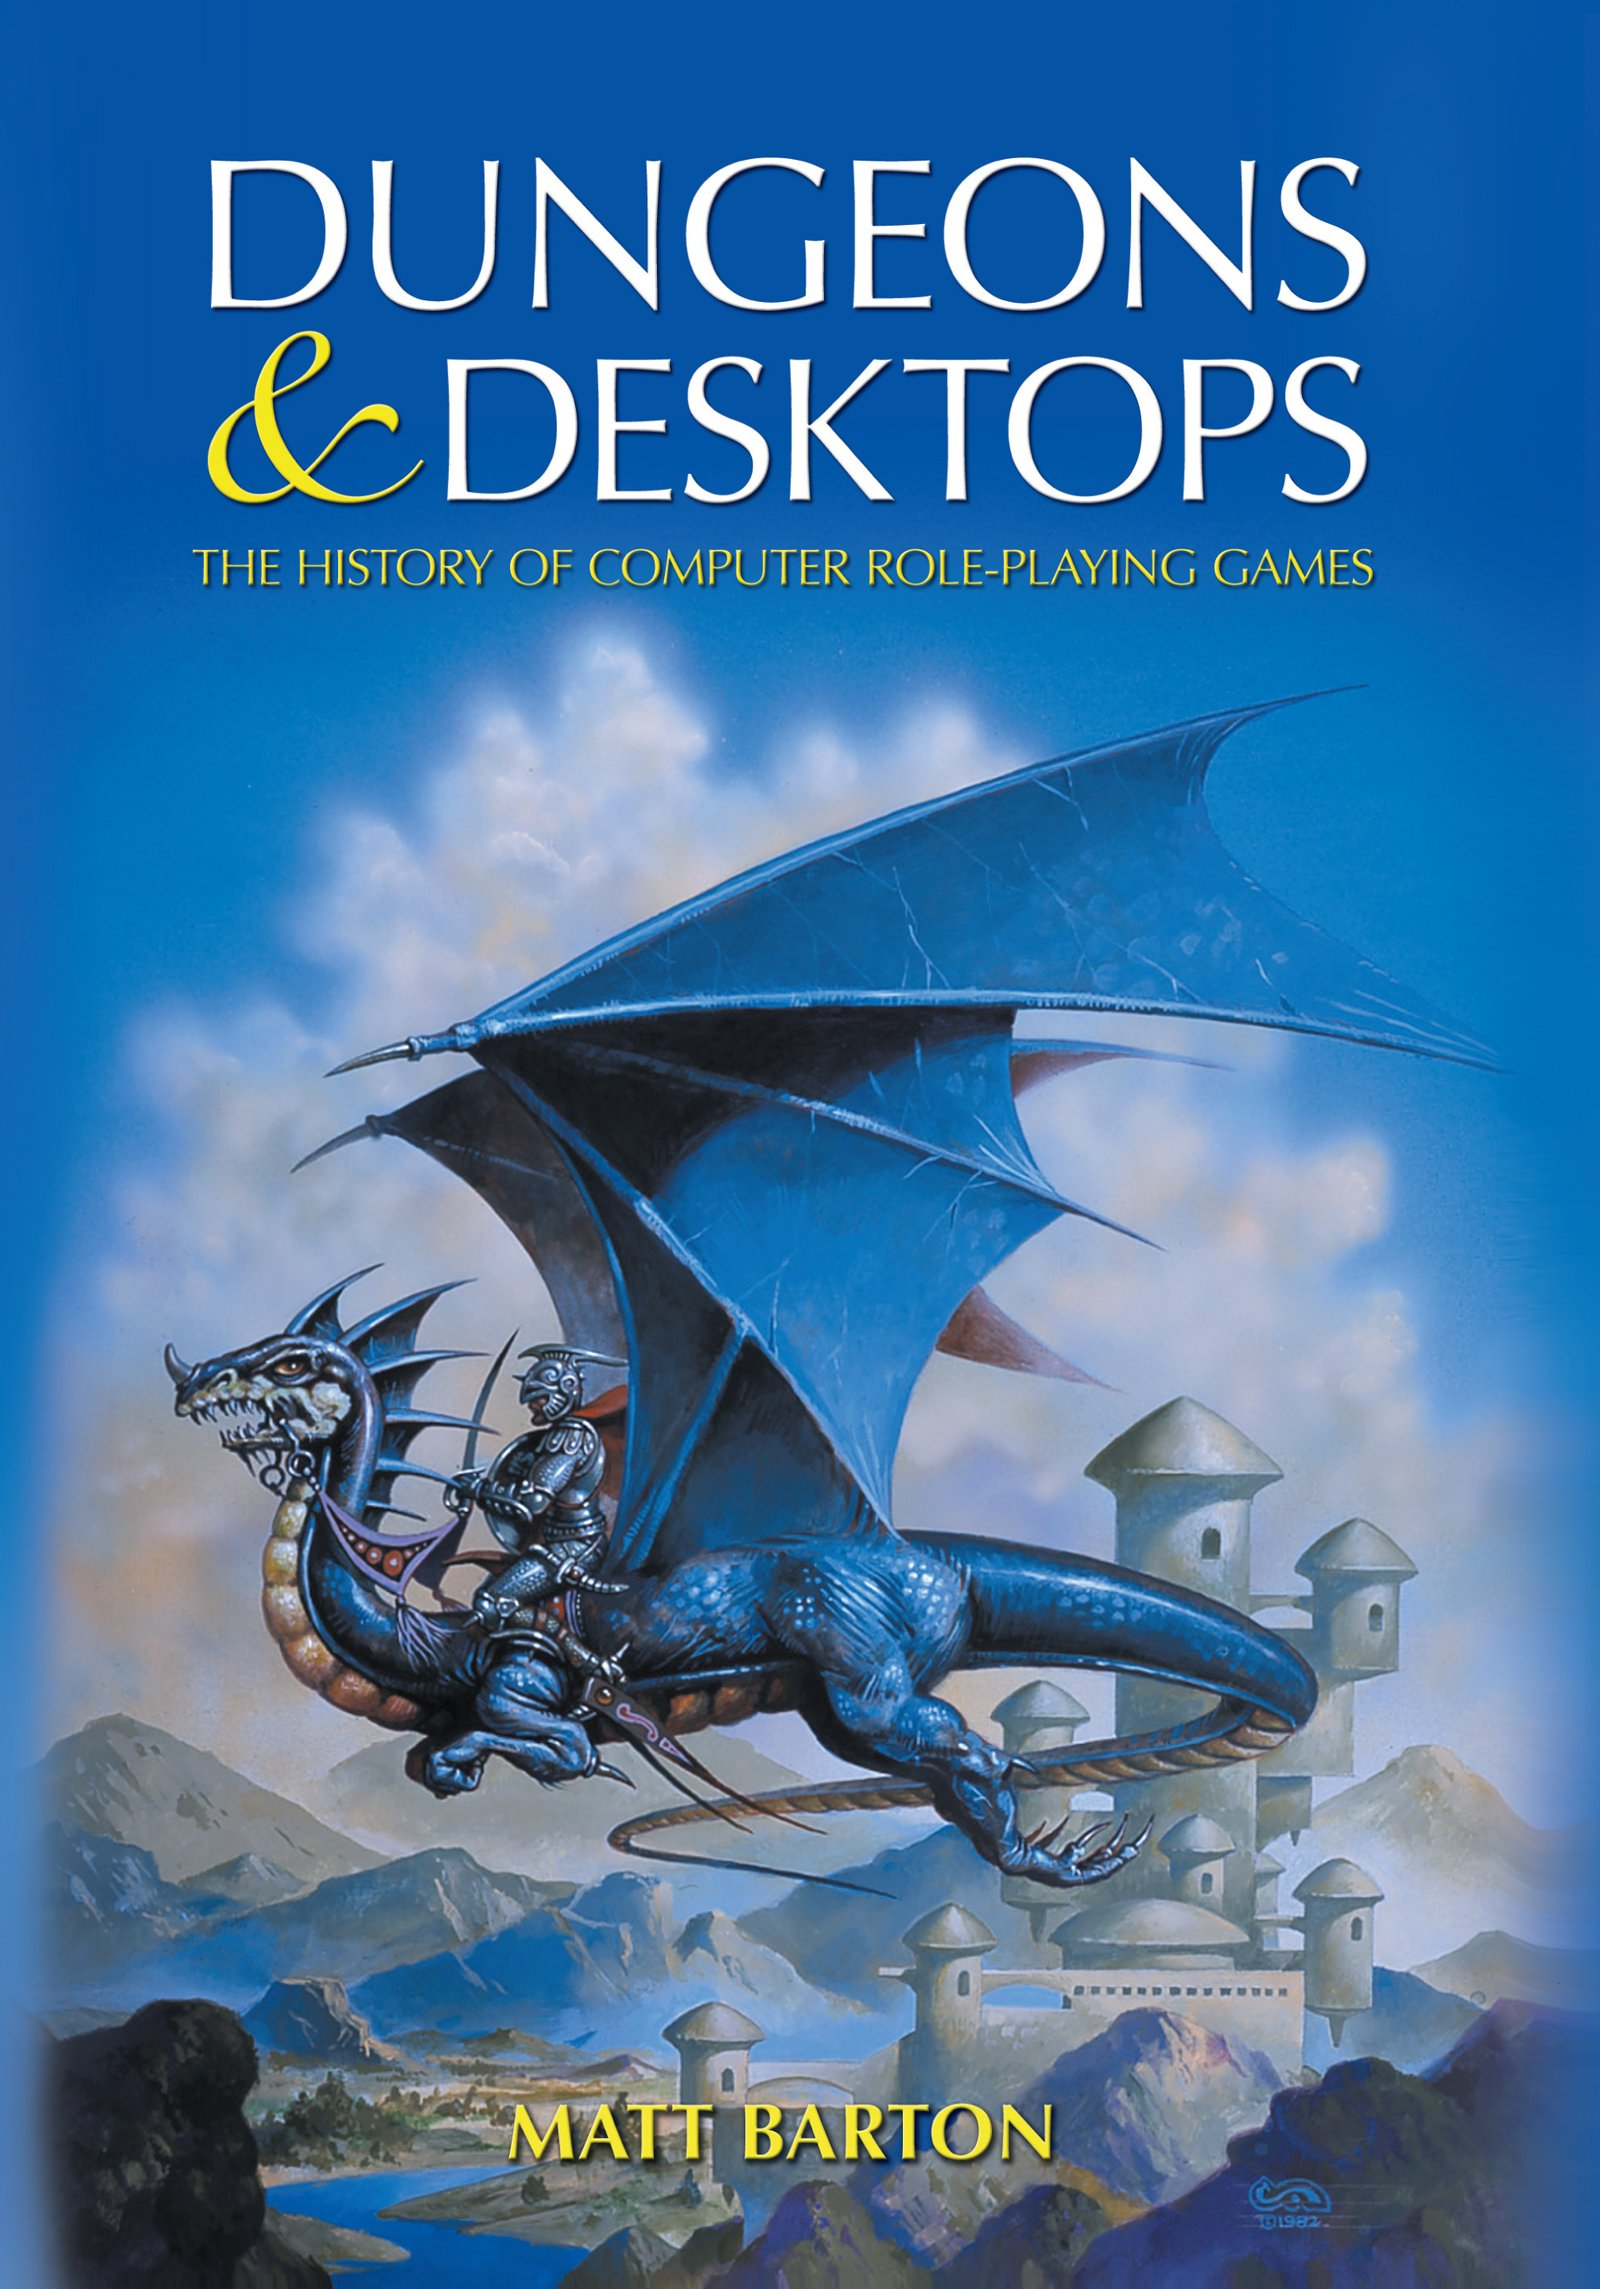 dungeons-and-desktops-the-history-of-computer-role-playing-games_10582387.jpeg